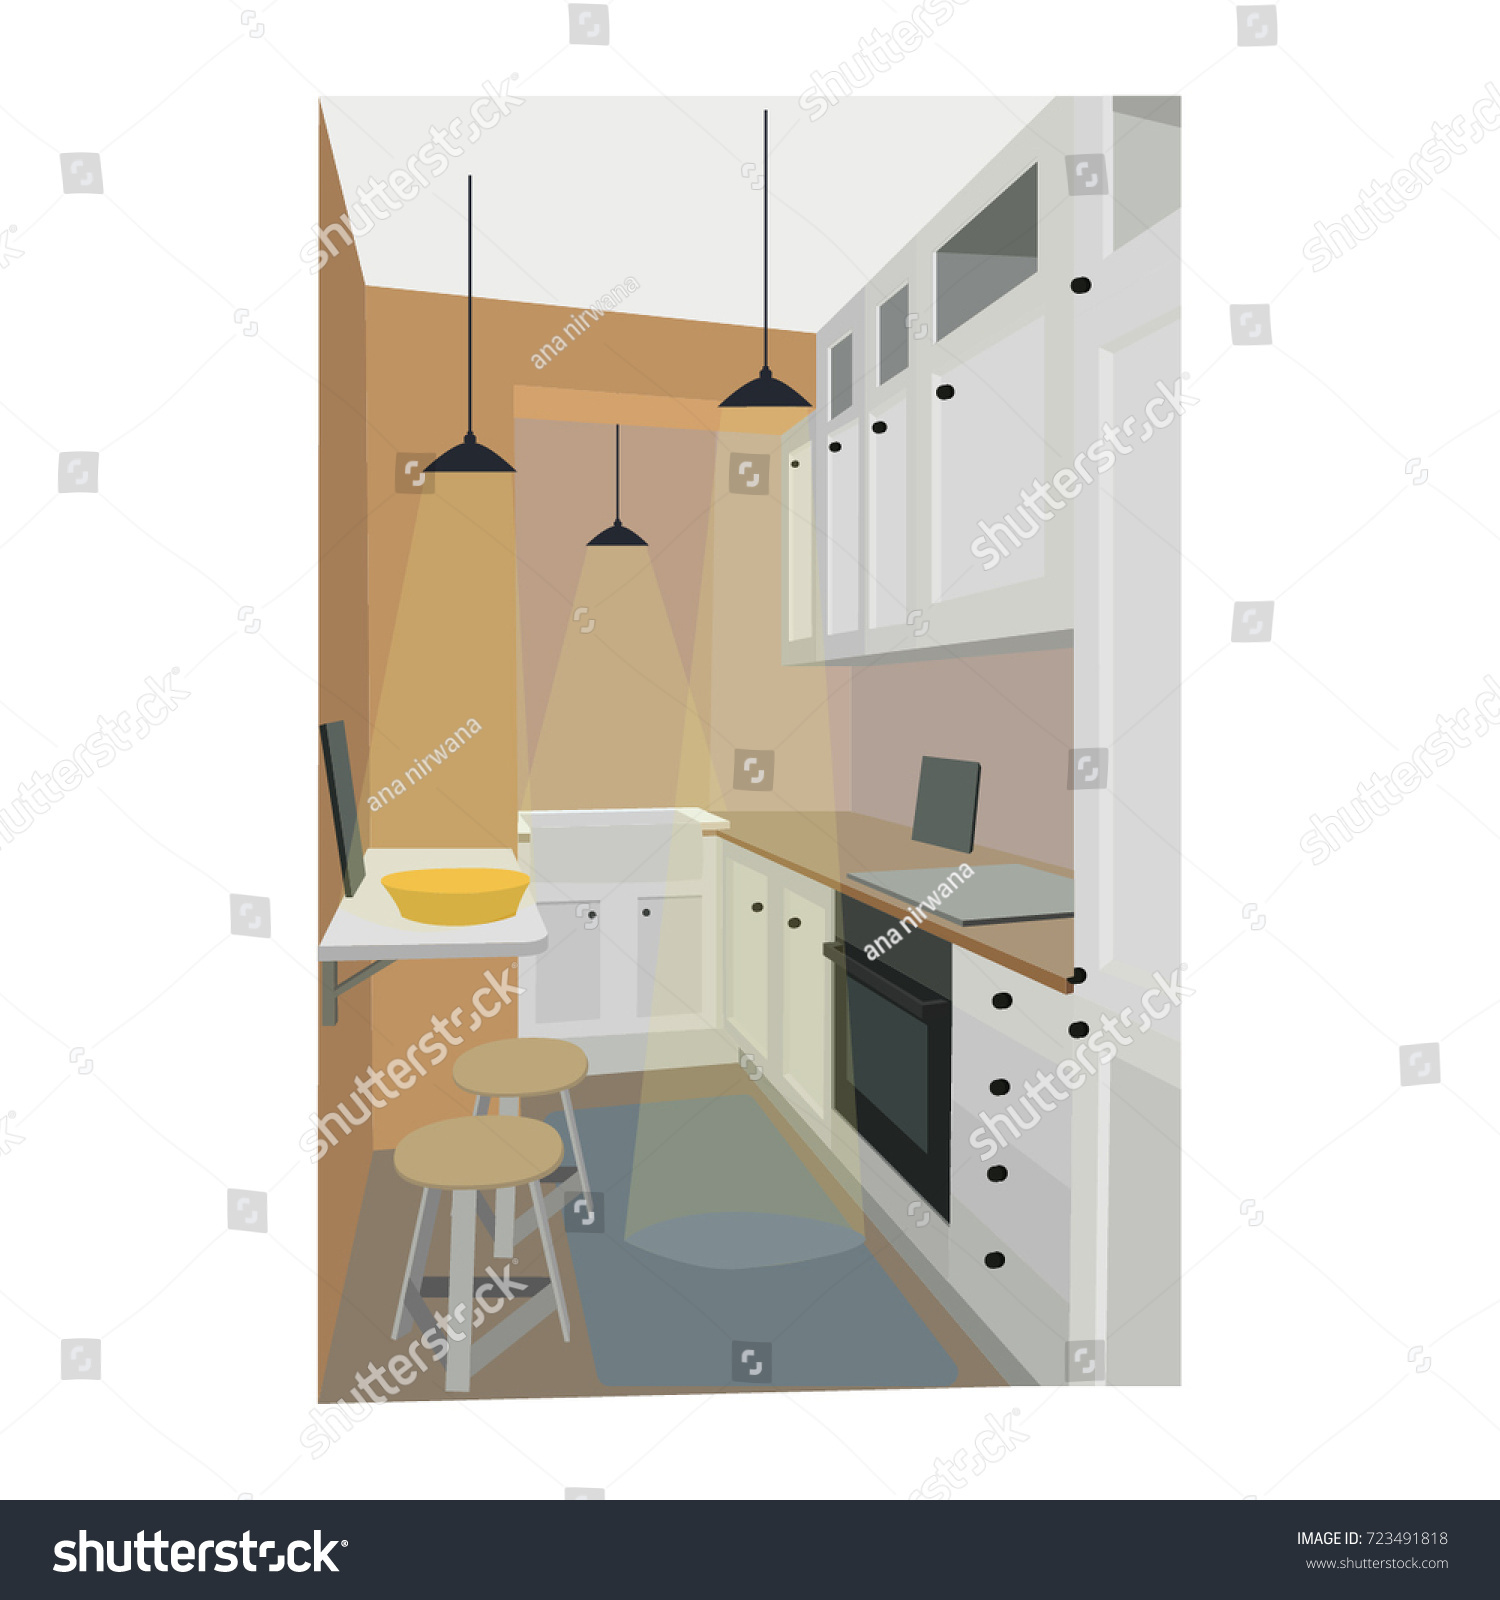 Home Interior Kitchen And Dining Room Design Vector Illustration In Flat Style